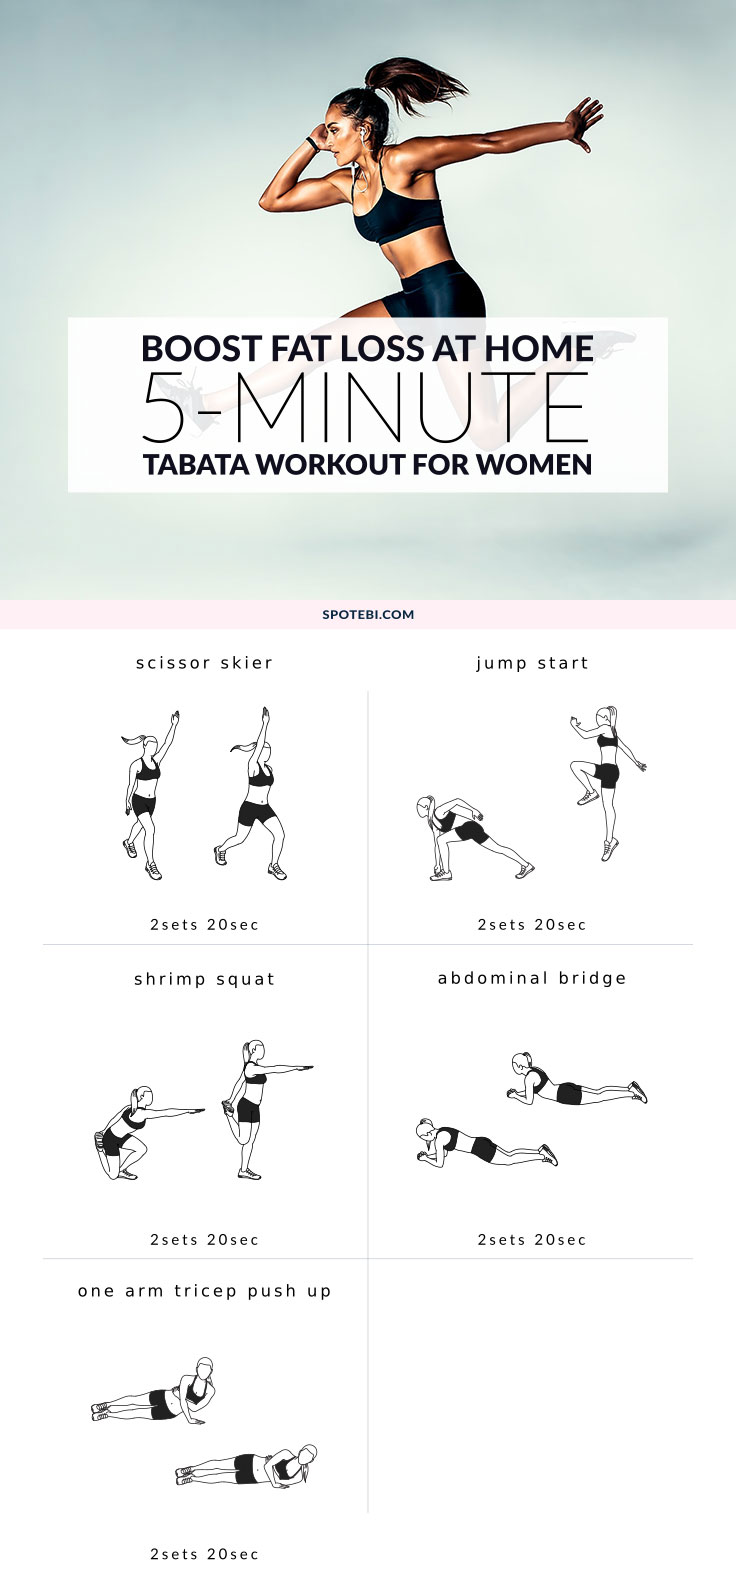 Tabata Training: A 5-Minute Workout to Boost Fat Loss